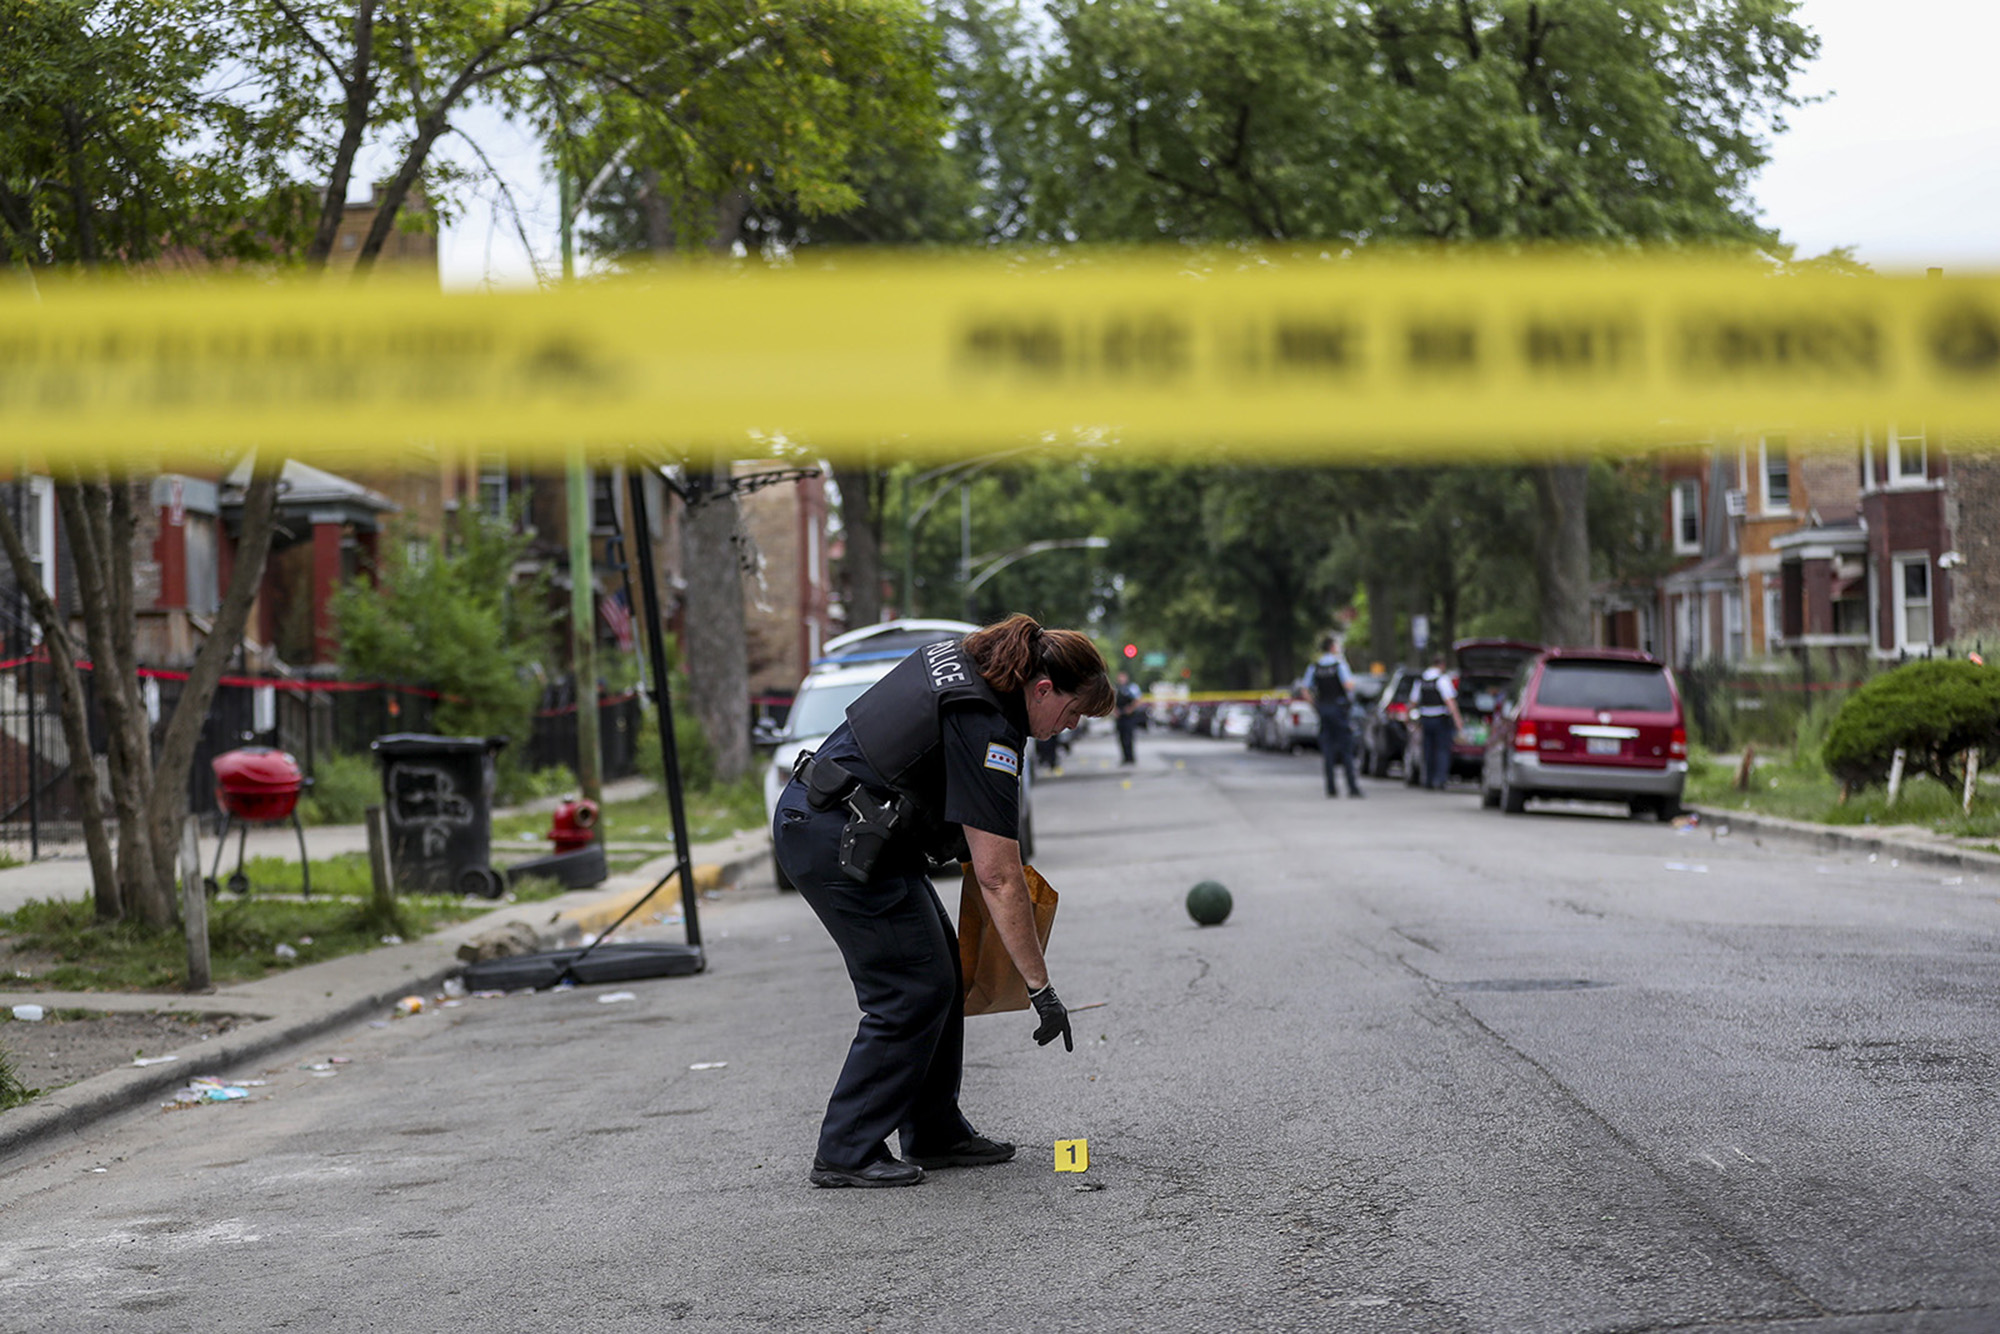 An officer collects evidence at the scene where an 8-year-old girl was shot on the 1000 block of North Monticello Avenue on Aug. 11, 2019 in Chicago.